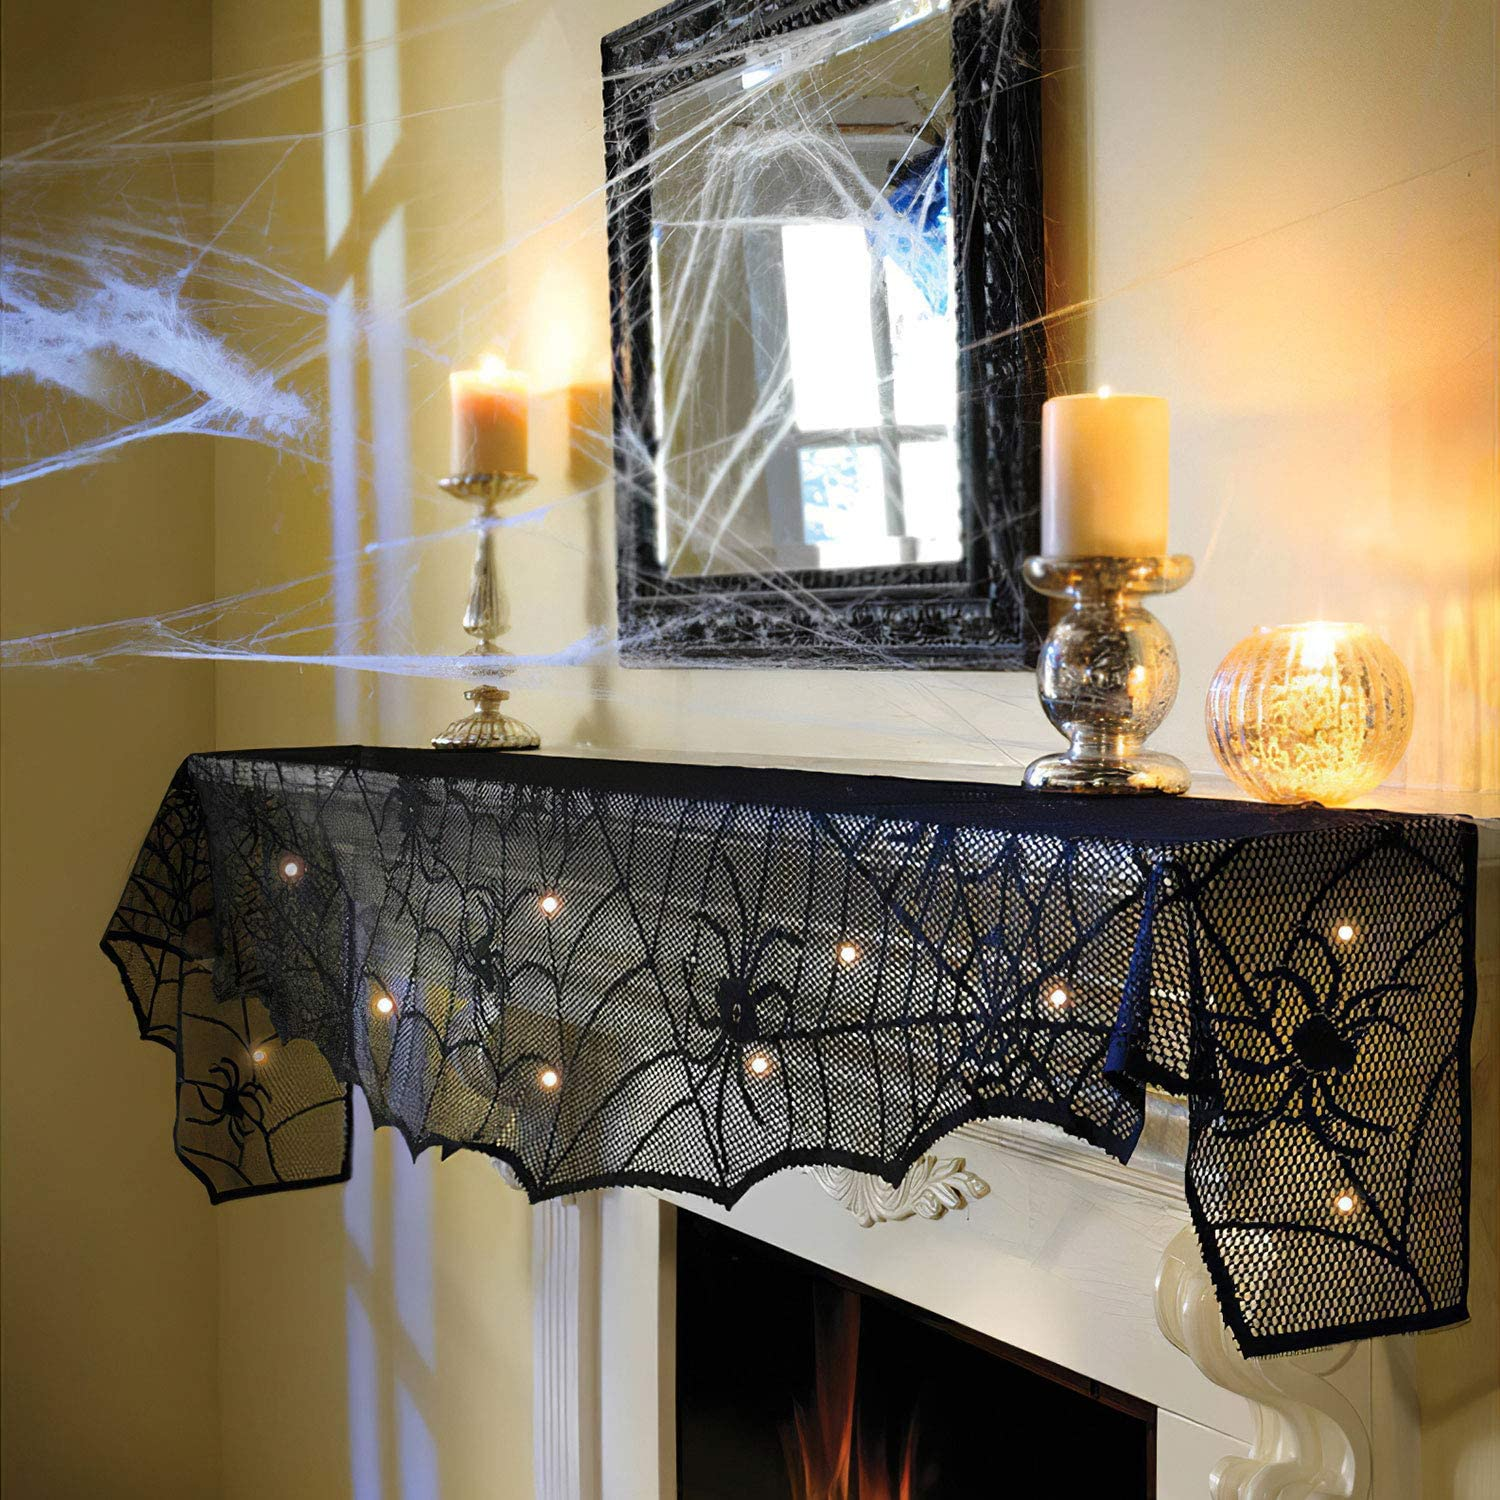 FUN LITTLE TOYS Halloween Lace Spiderweb Fireplace Mantle, 8.4 Feet String Lights for Halloween Home Party Decor